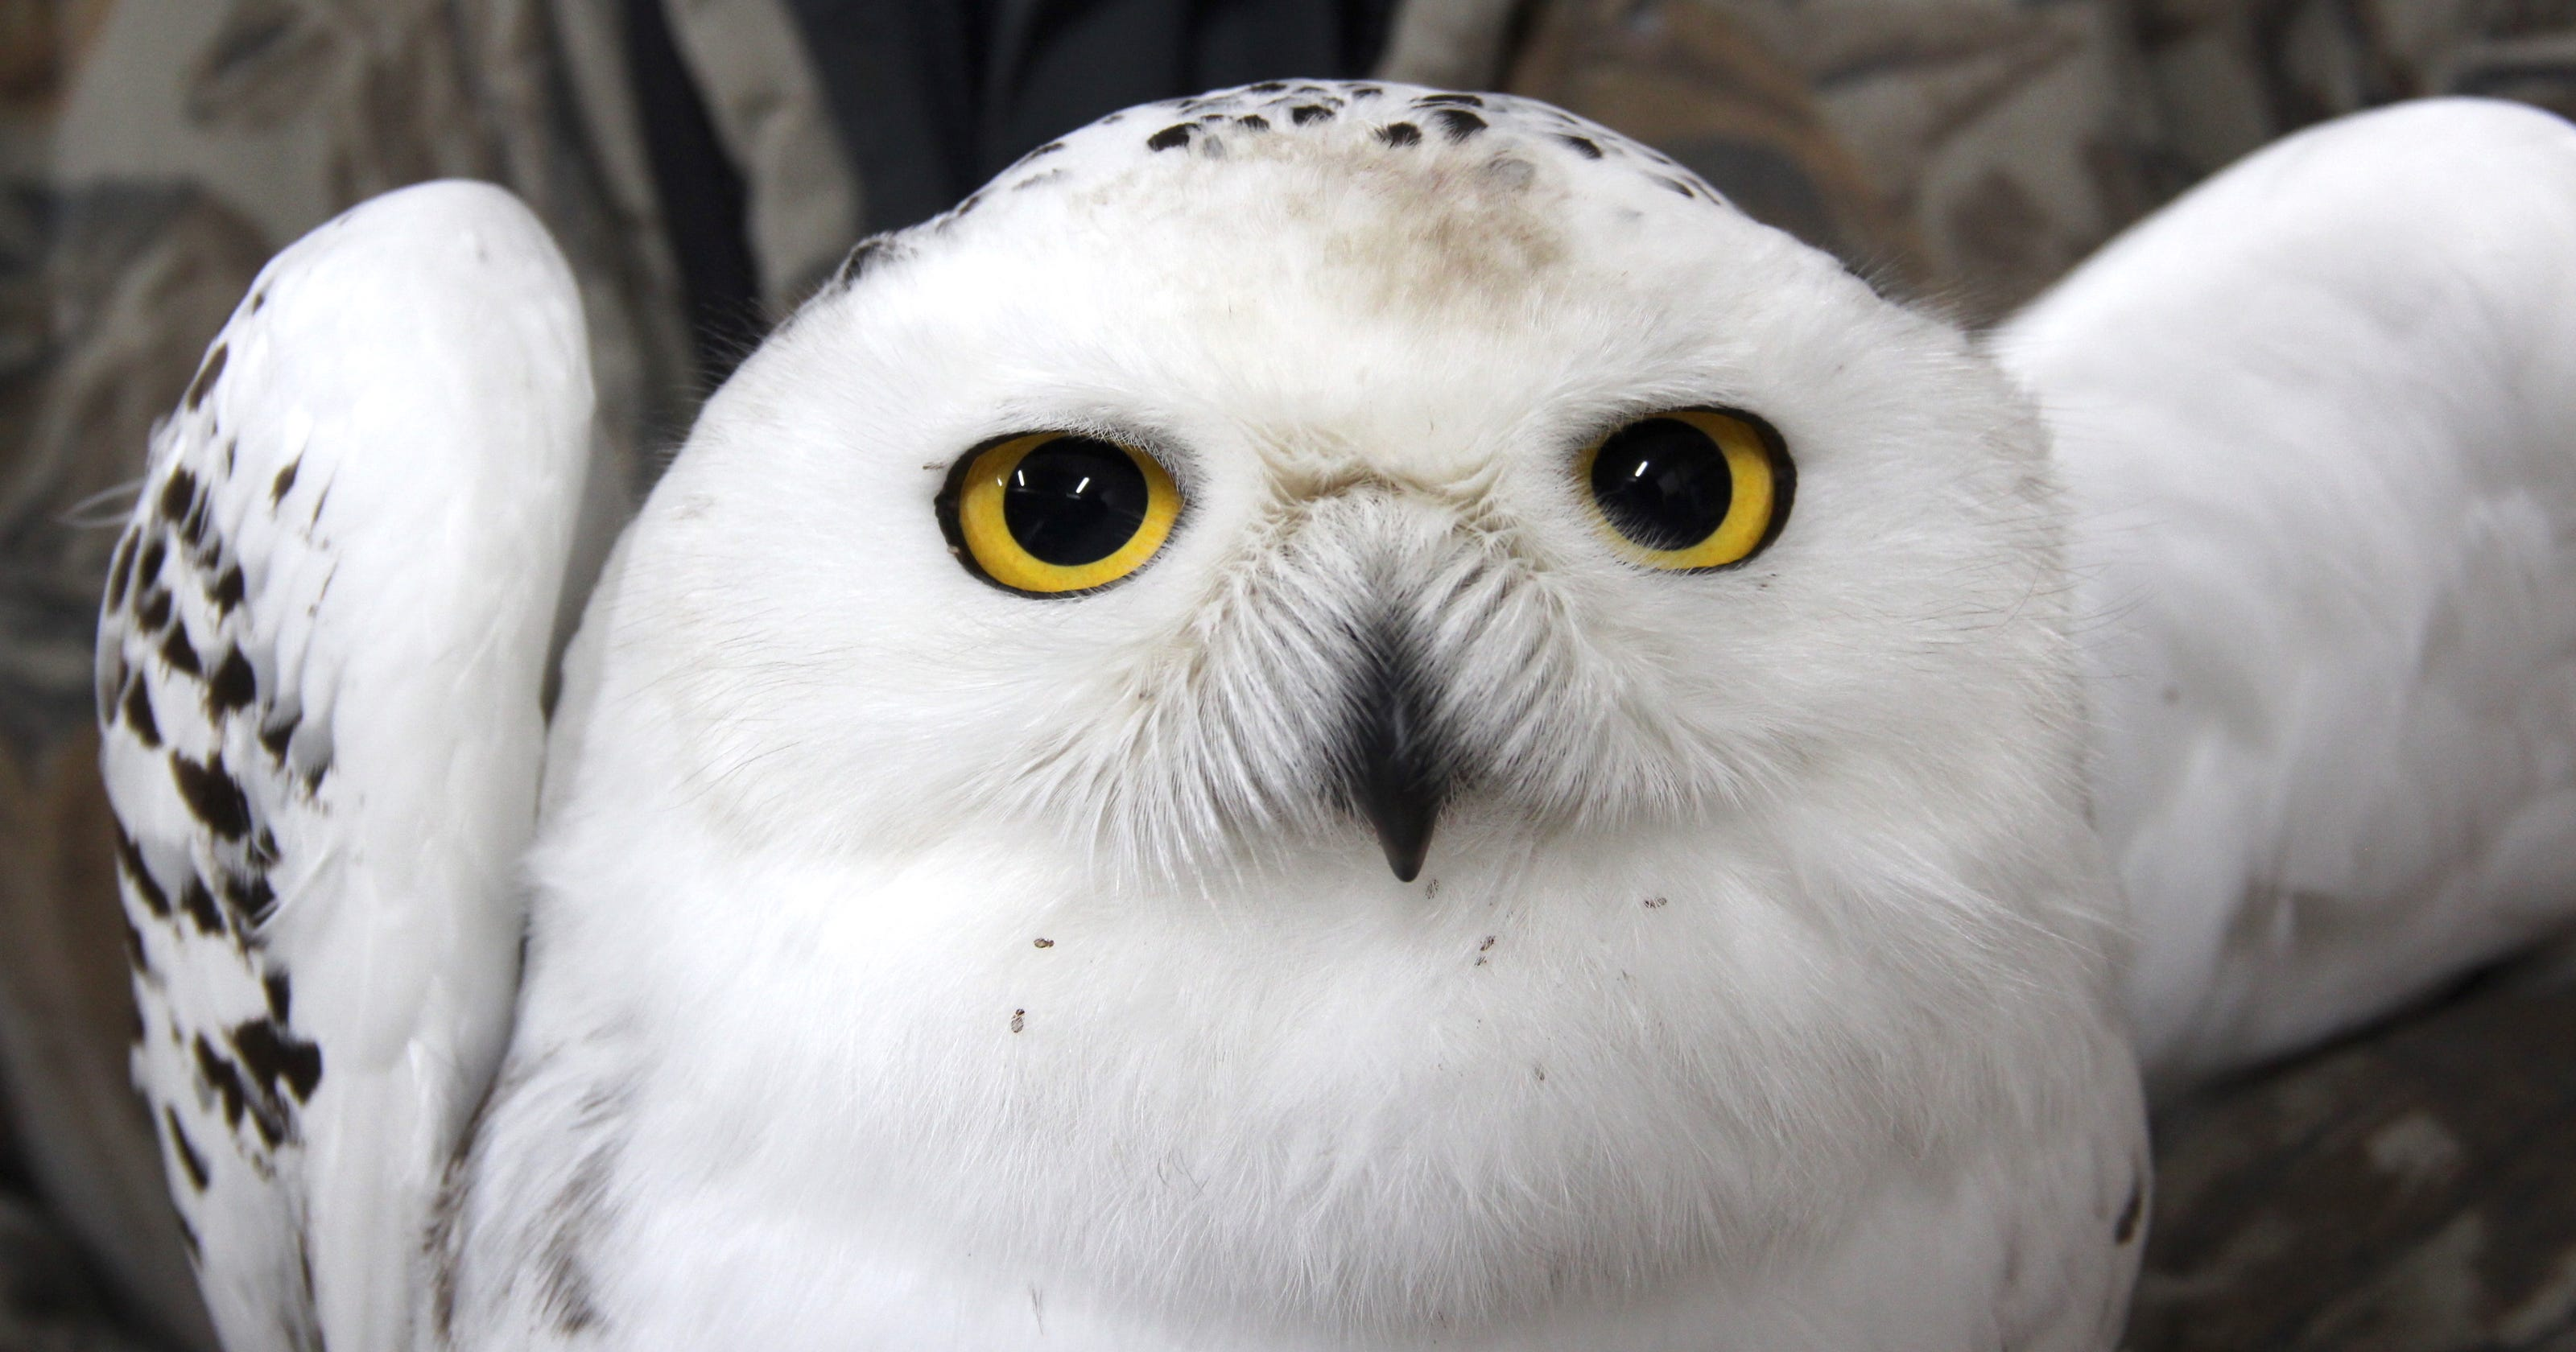 Record number of snowy owls sighted in Wisconsin this winter - photo#20